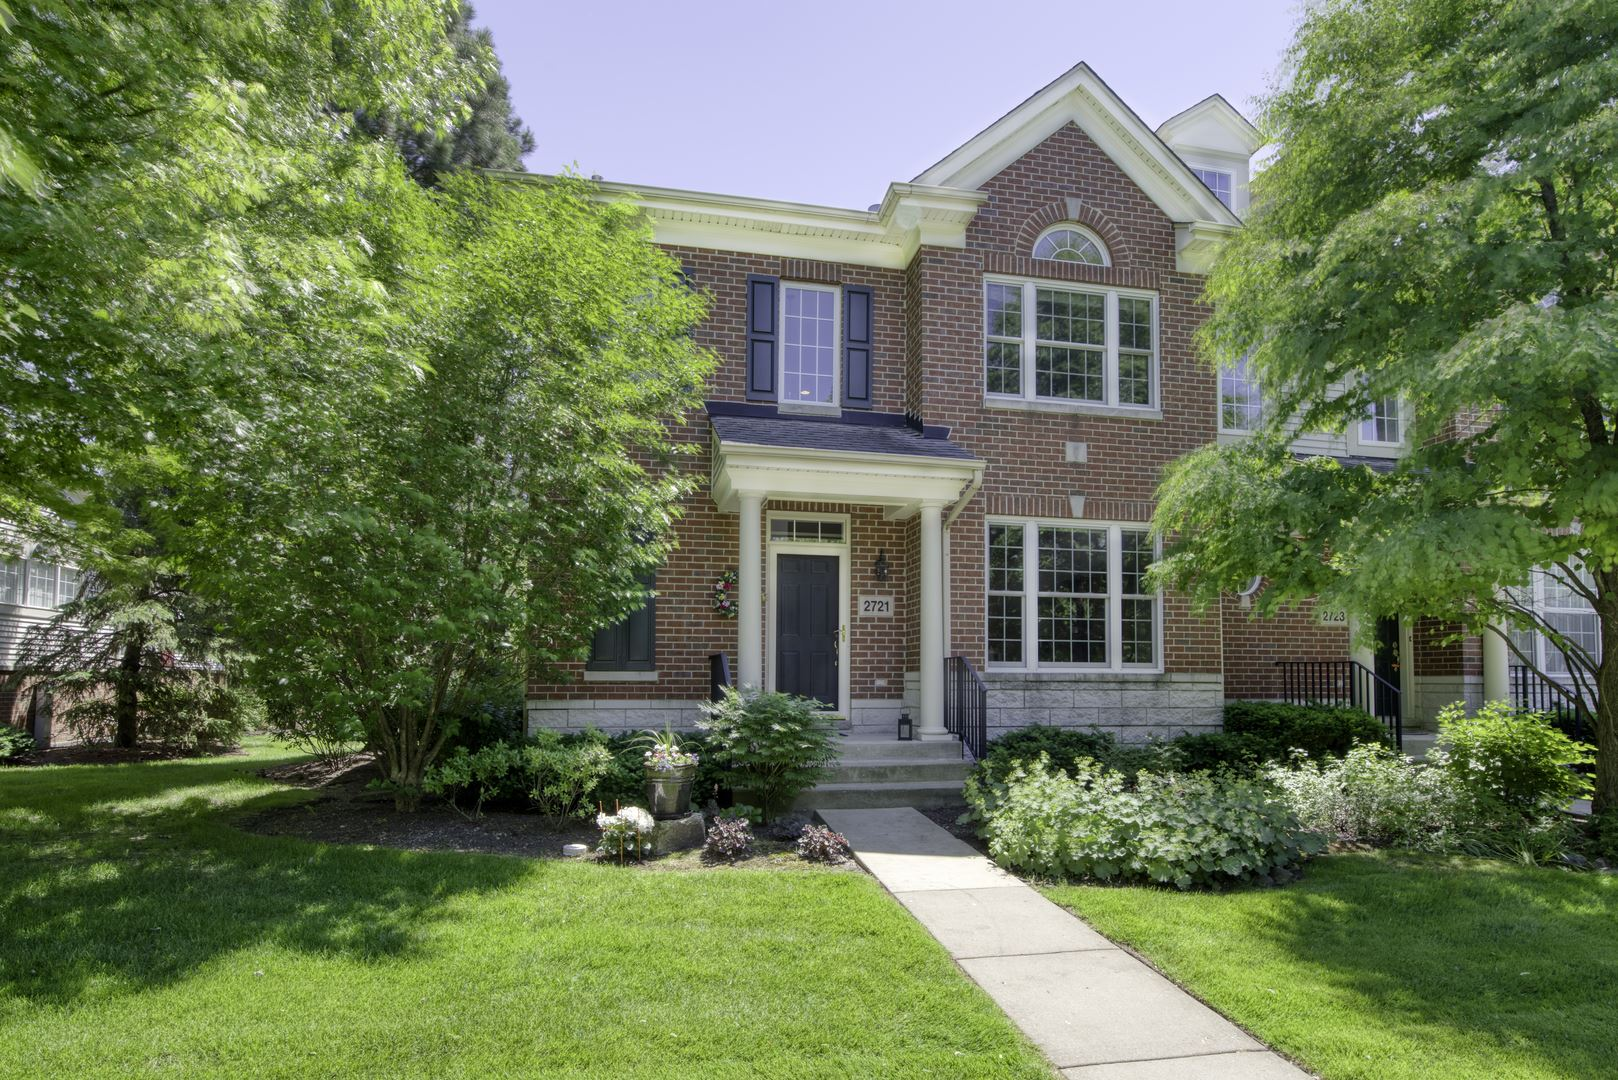 2721 Langley Circle, Glenview, IL 60026 - MLS#: 10746864